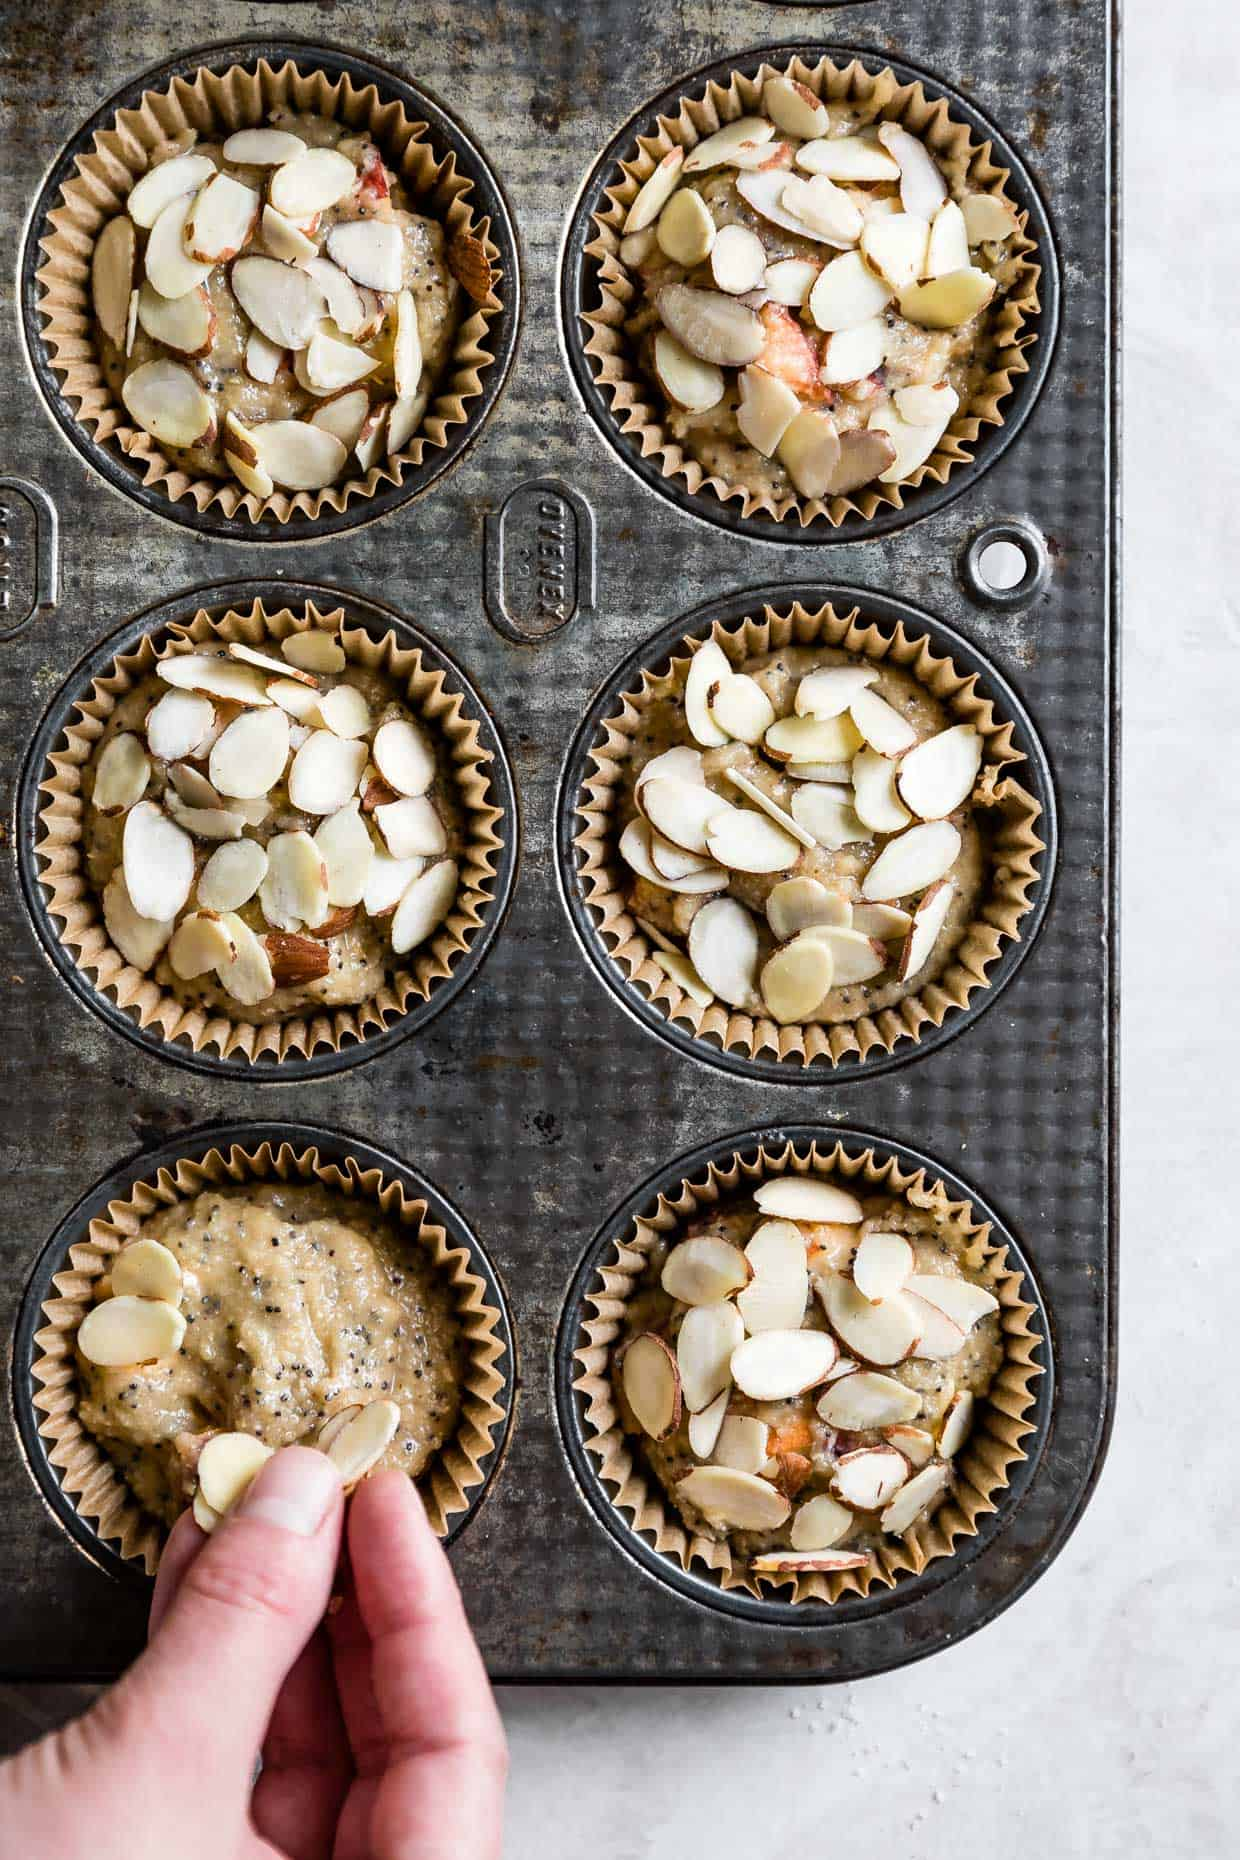 Poppy Seed Muffins with Almonds in Baking Pan